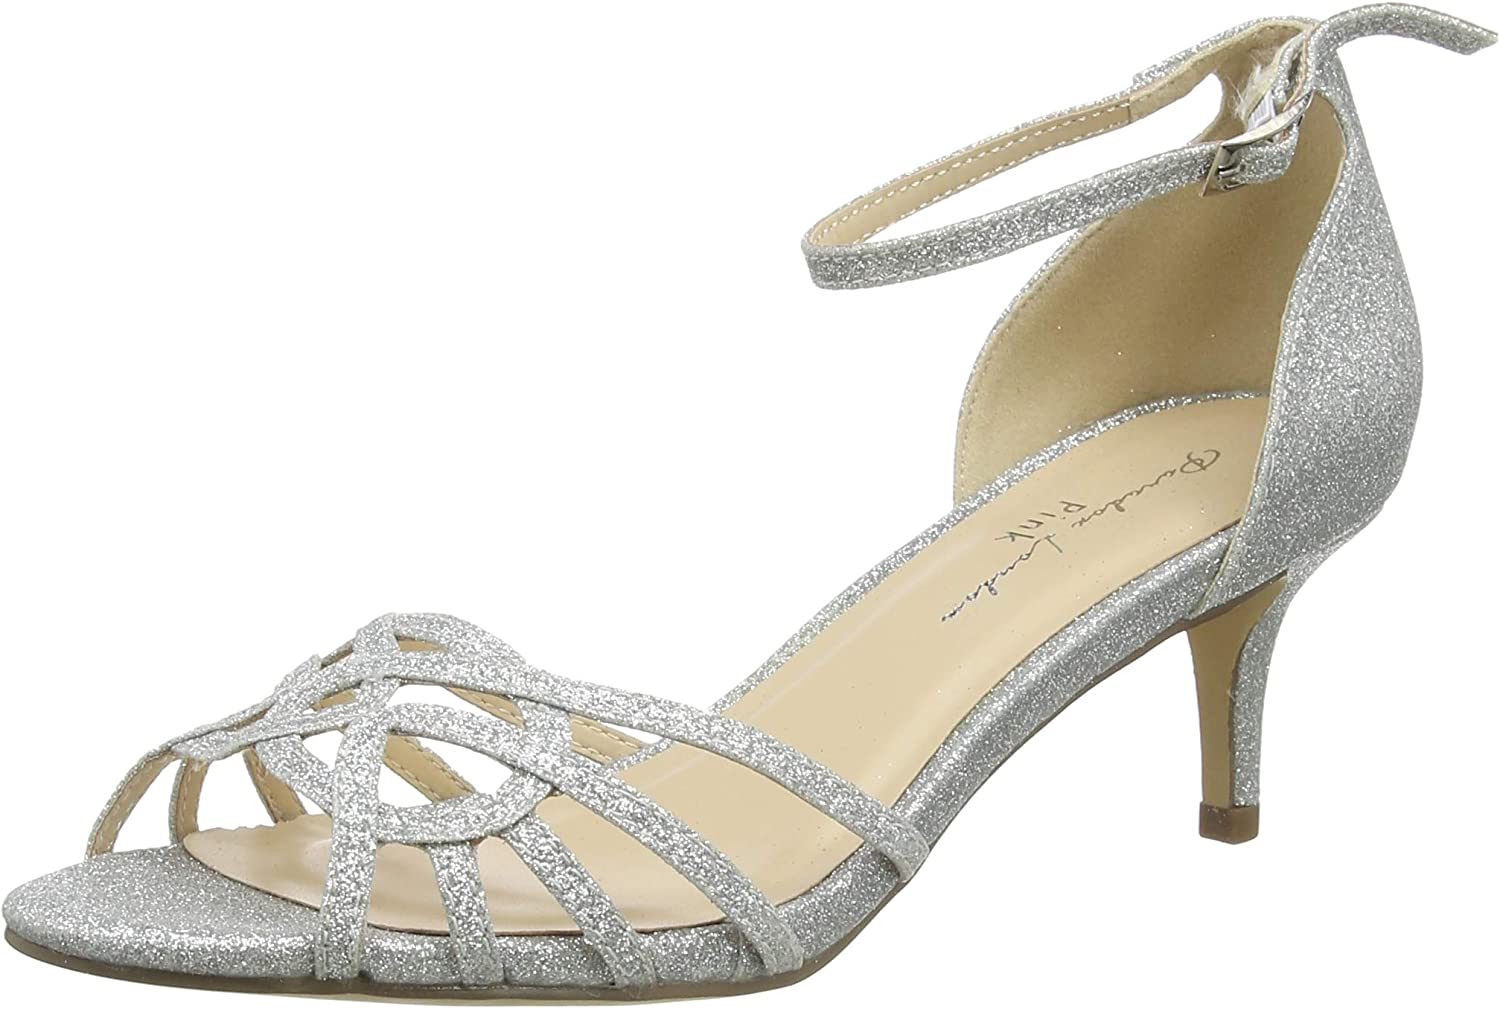 Paradox London Pink Women's Silver Sandals Large-scale sale Ankle 2021new shipping free Strap